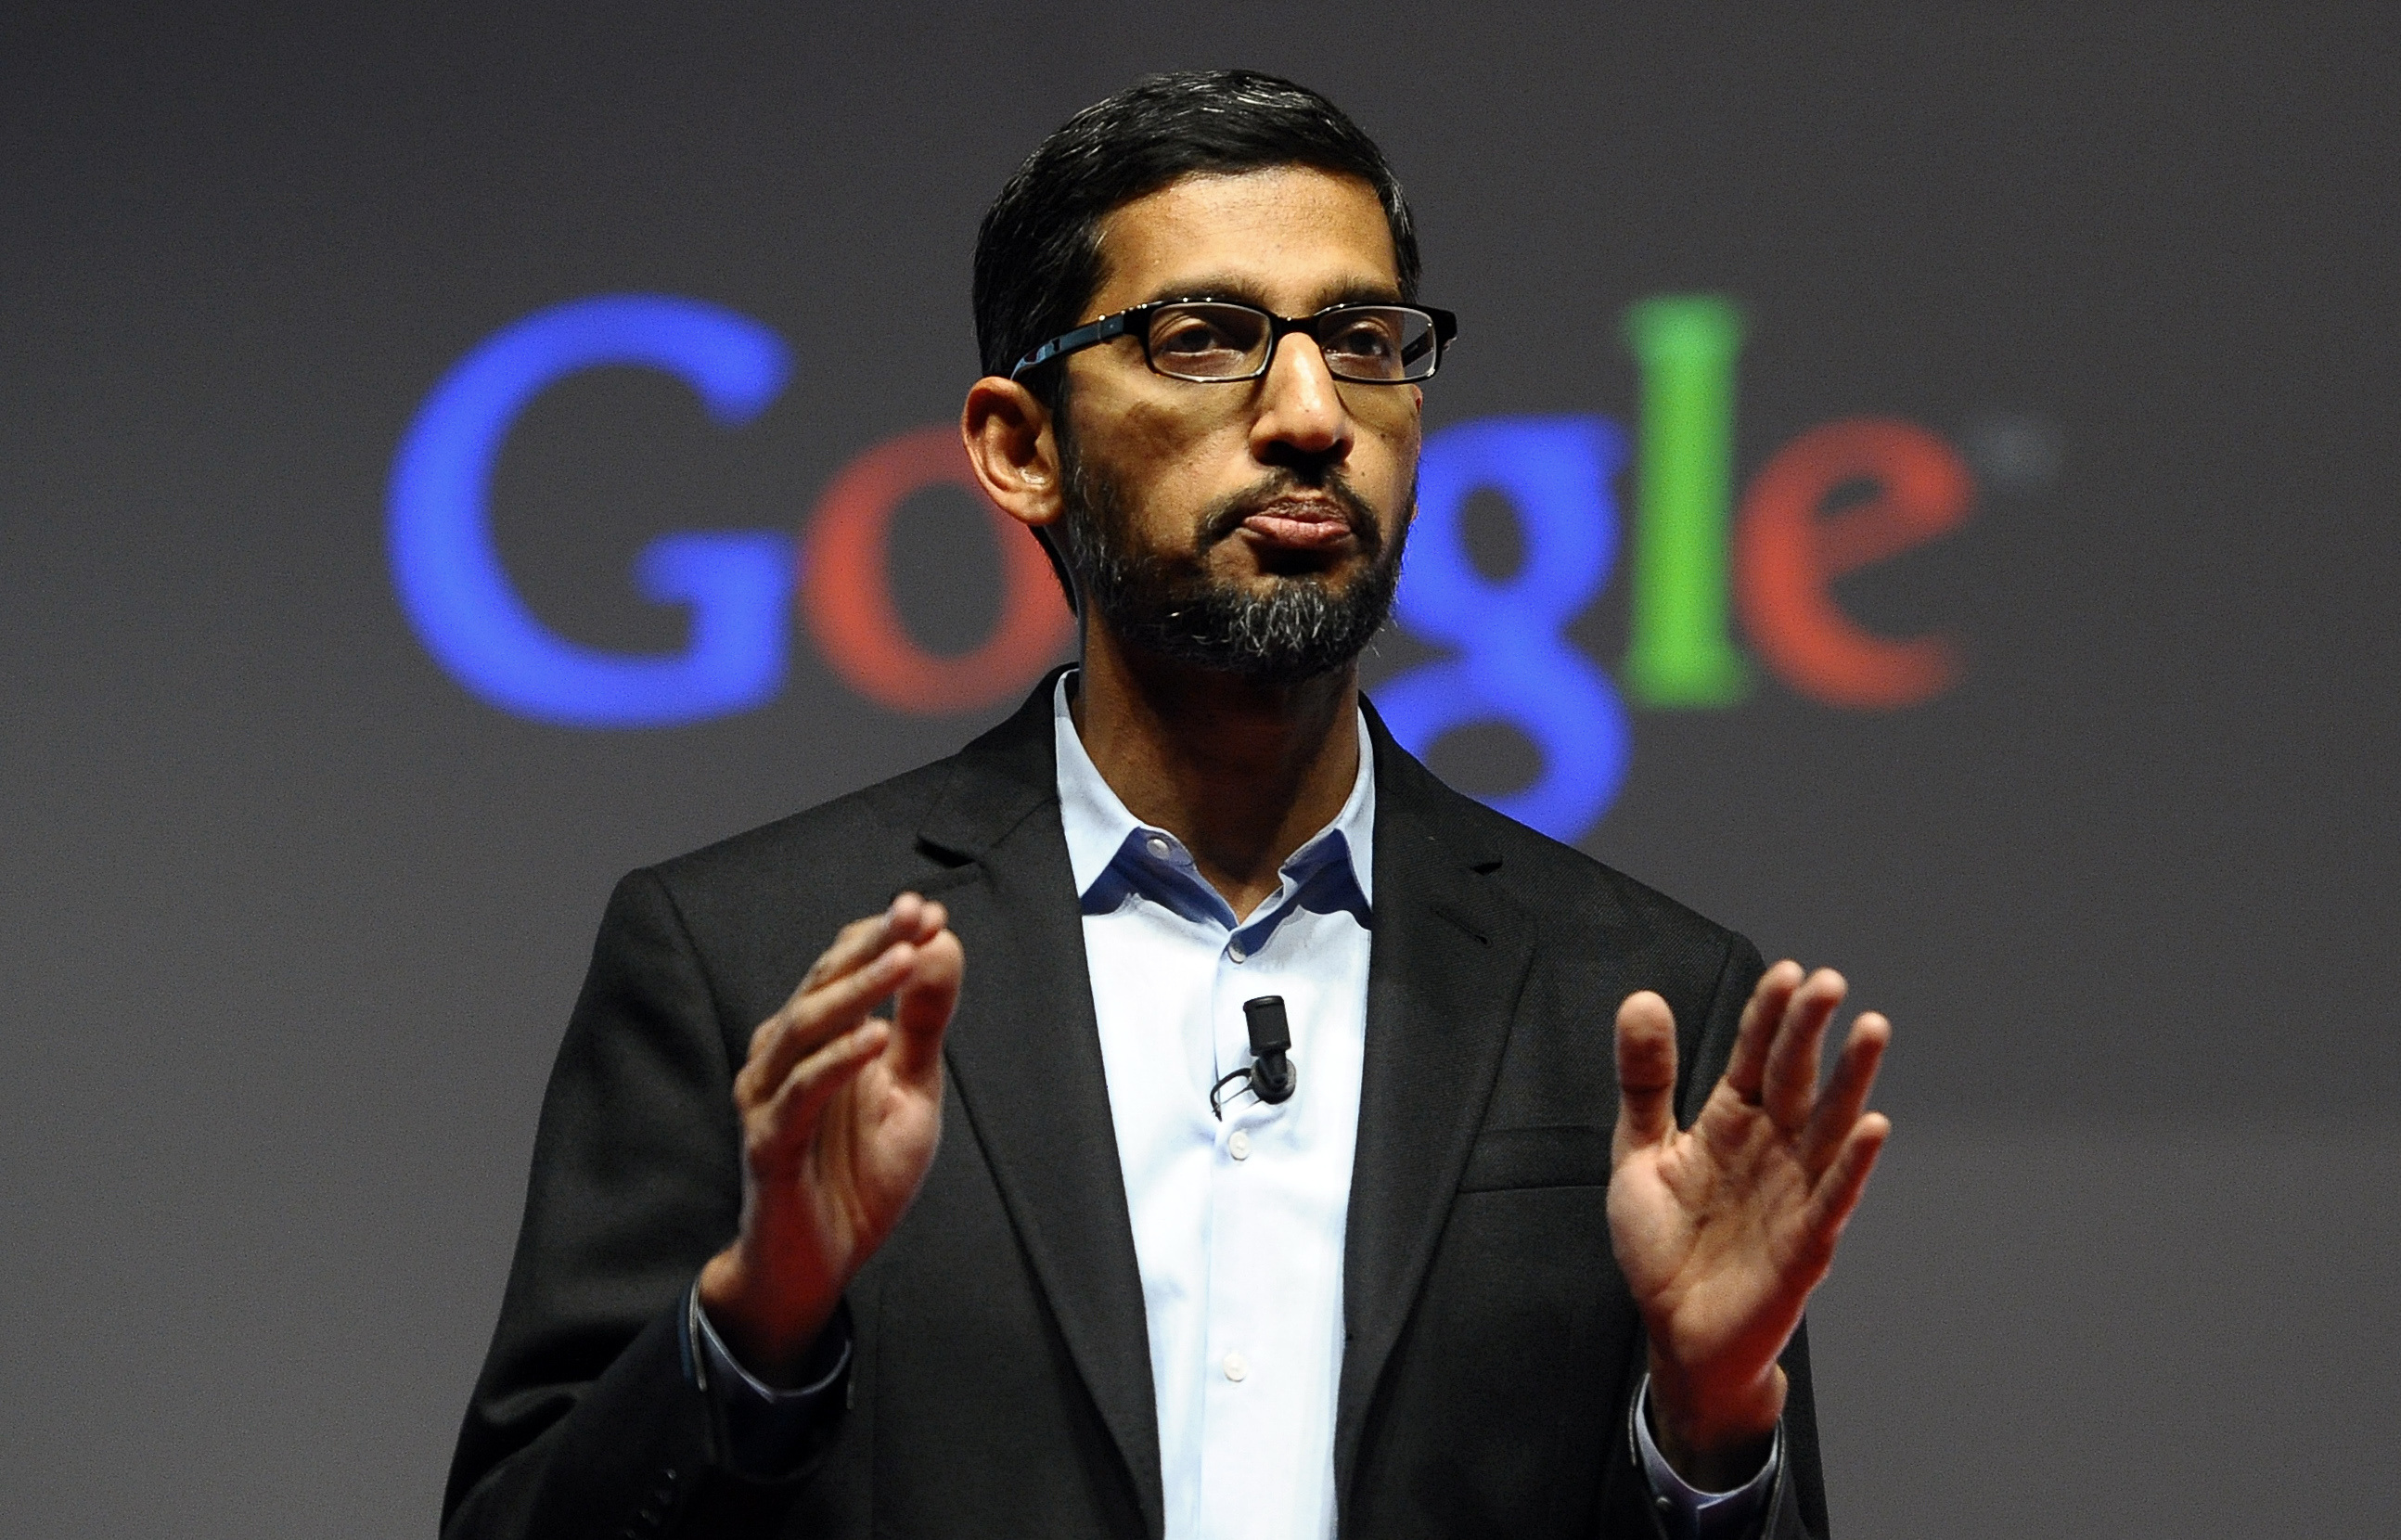 Google CEO Sundar Pichai has been selected to receive the prestigious Great Immigrant Award for 2016.